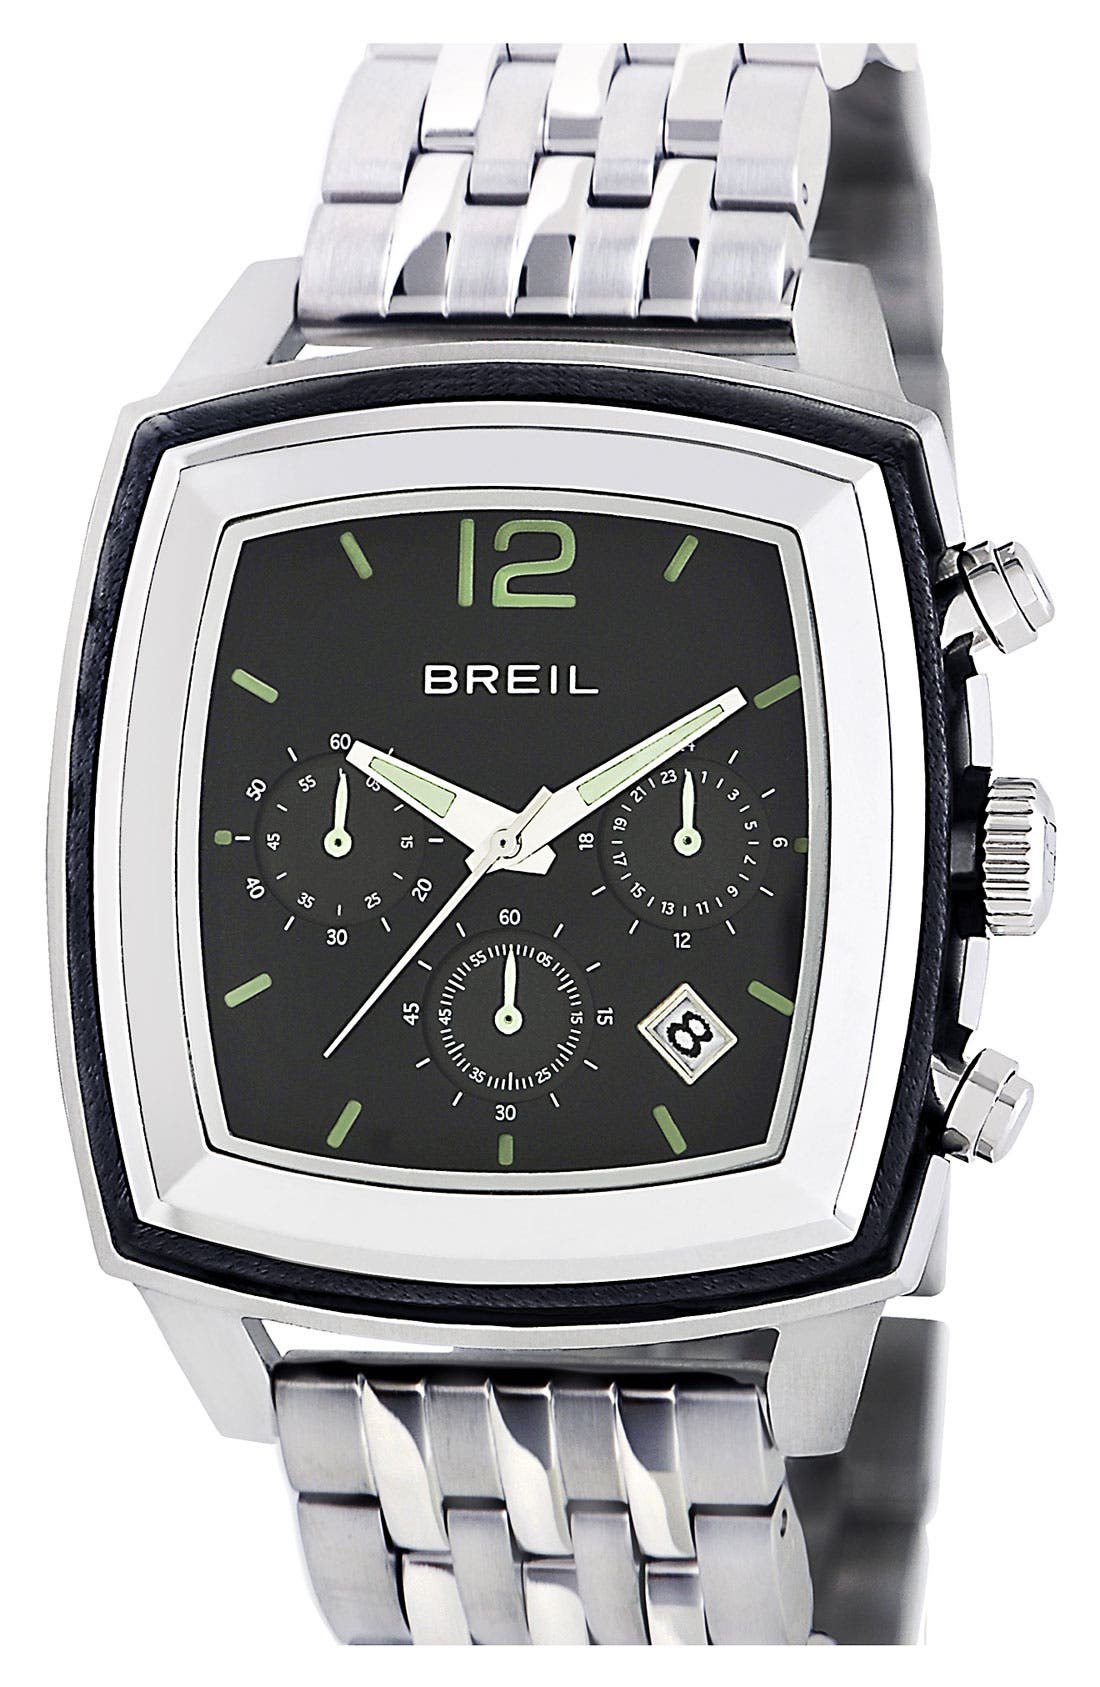 Main Image - Breil 'Orchestra' Large Square Chronograph Watch, 42mm x 52mm